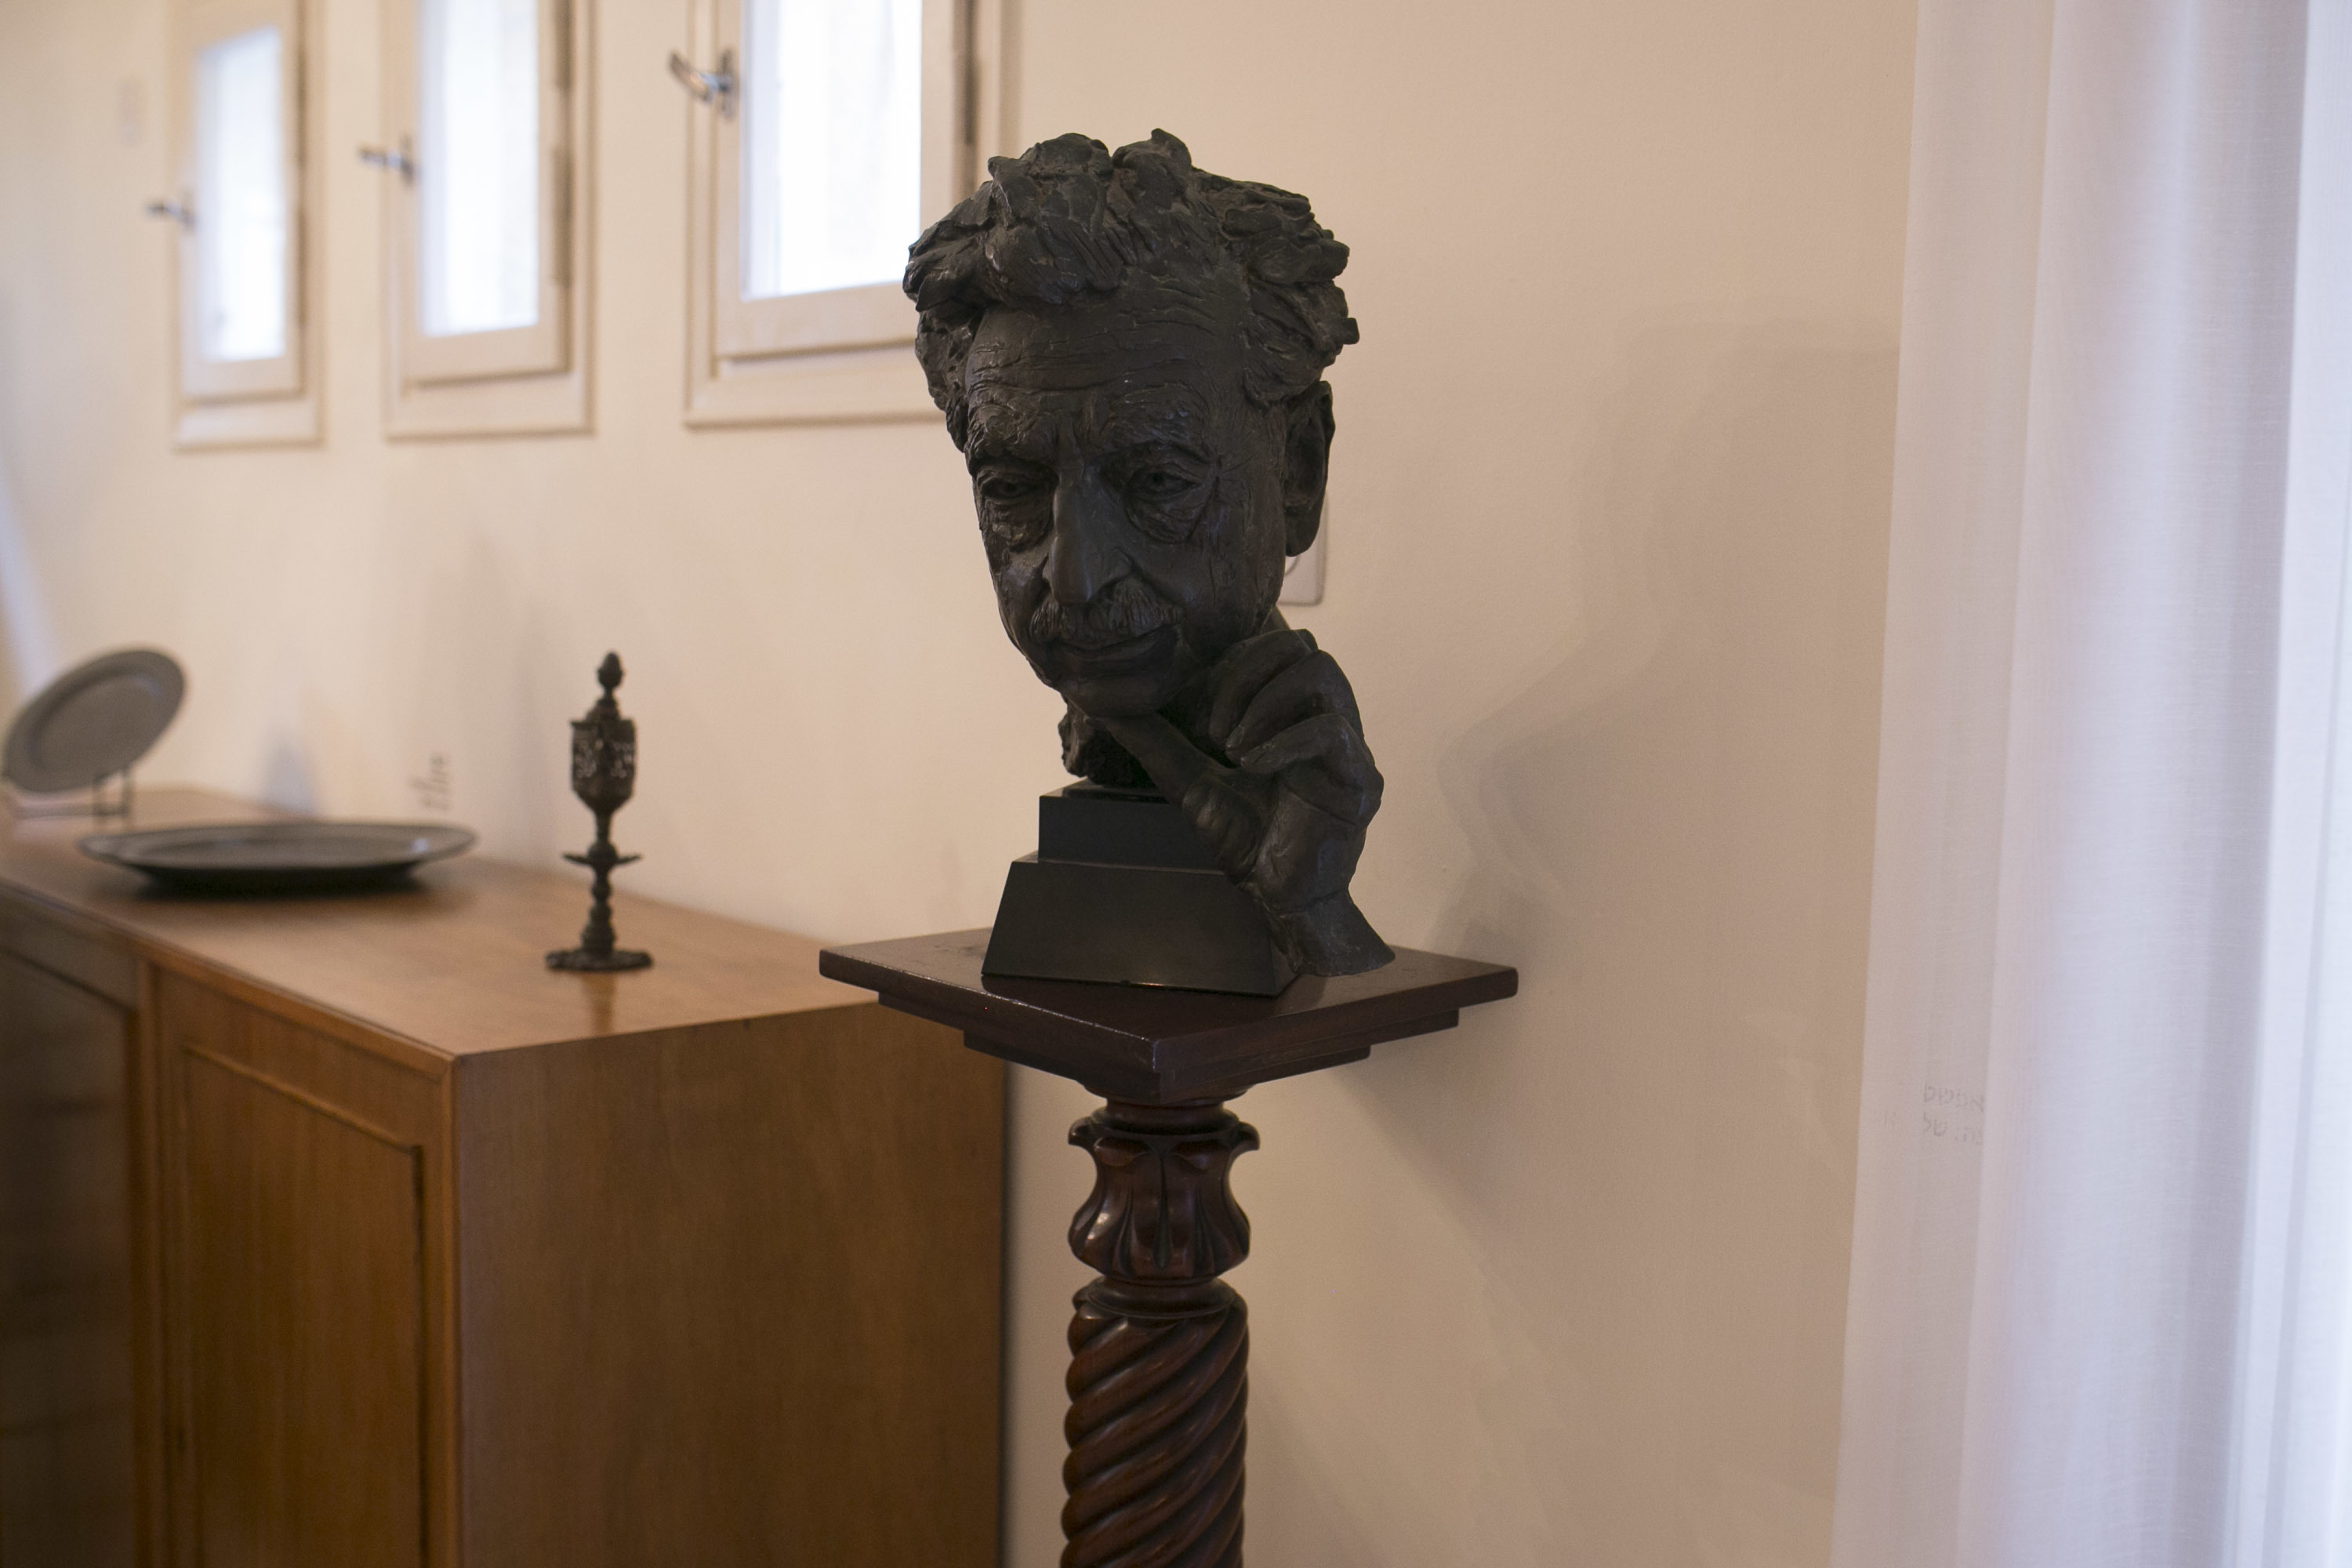 <p>Bust of Sholem Asch by Jacob Epstein, in the liv­ing room of the Sholem Asch Hoyz muse­um. Pho­to by Shi­raz&nbsp;Grinbaum.</p>